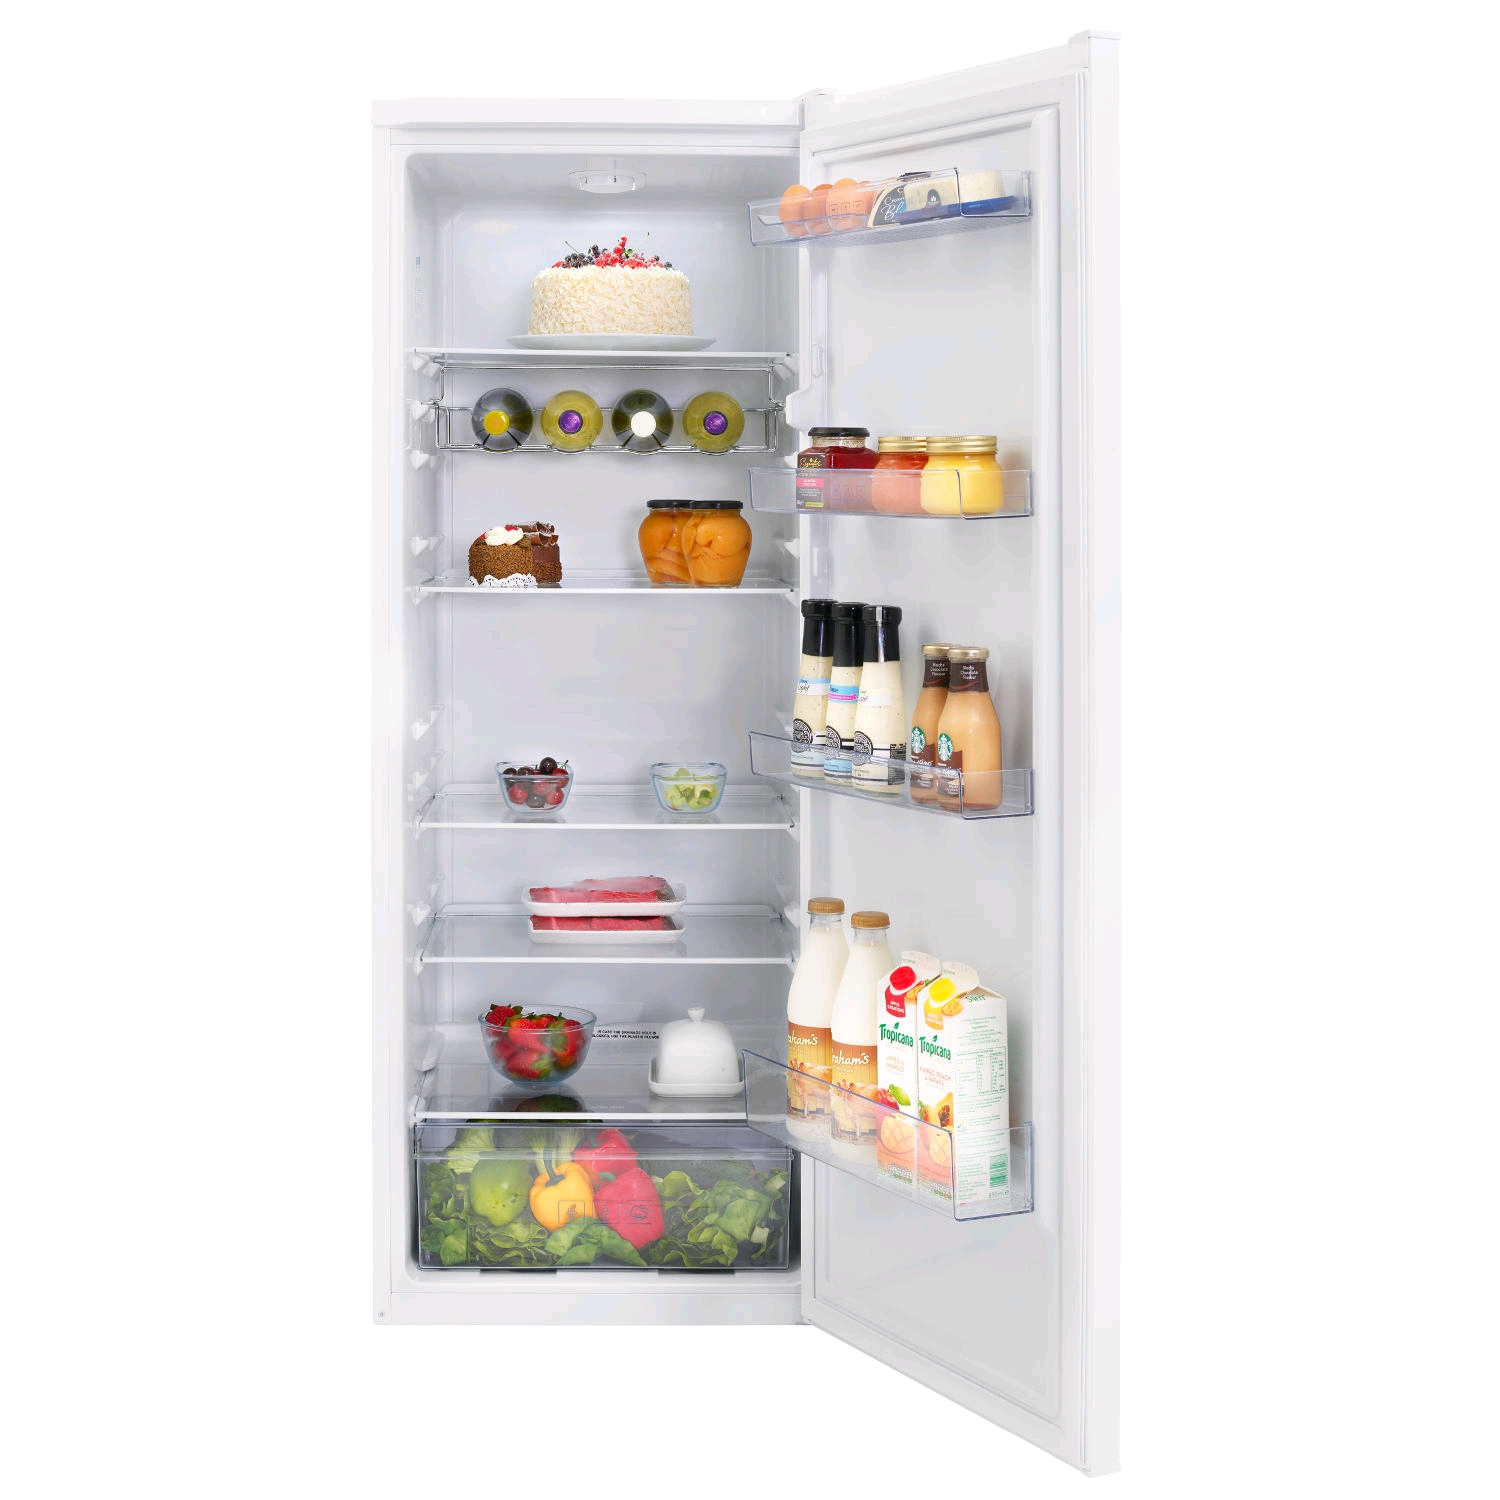 Beko Upright Larder Fridge 252Ltr H1450 W545